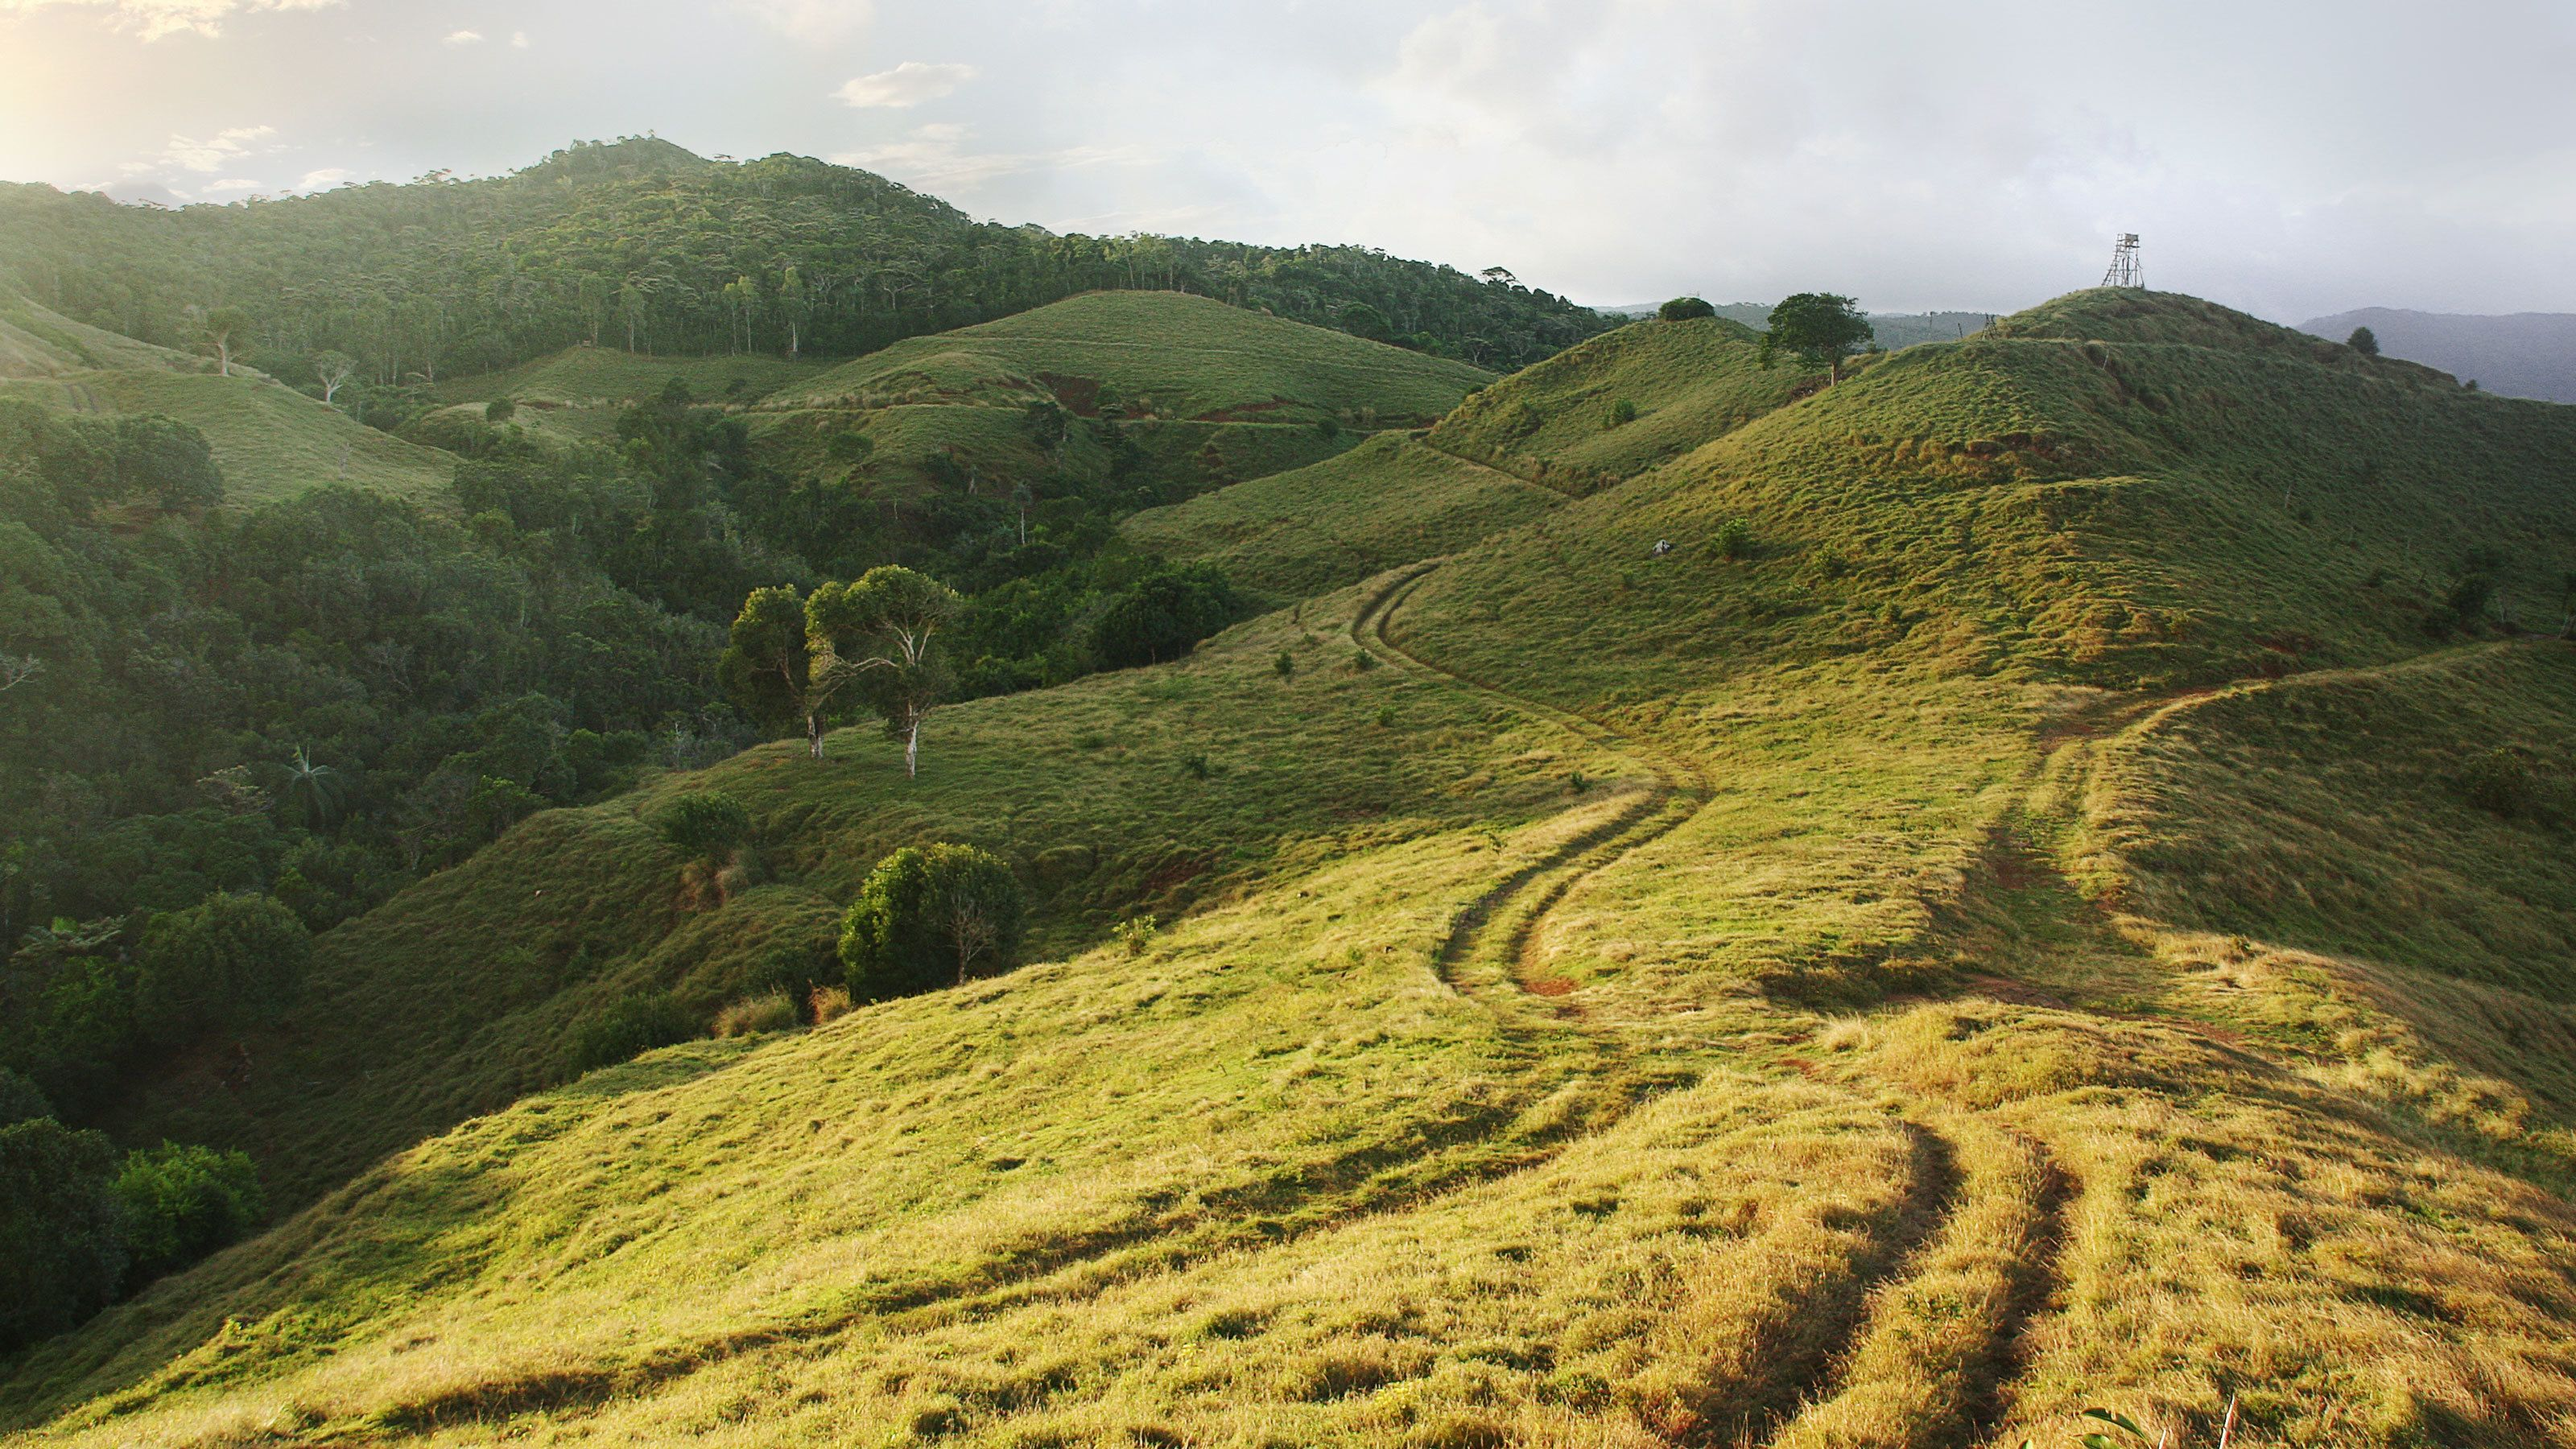 hilly terrain for quad biking at the Frederica Nature Reserve